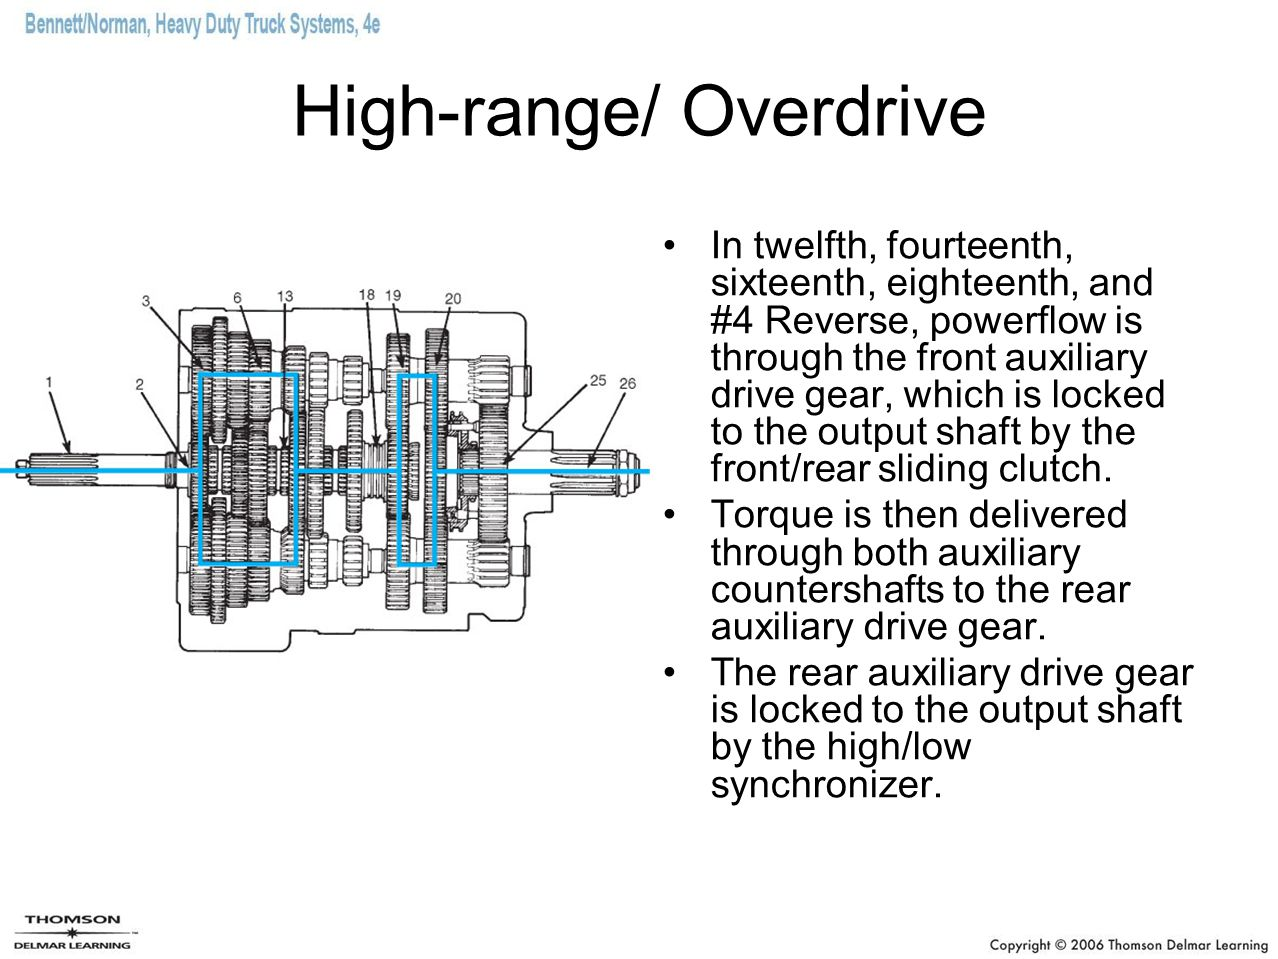 High-range/ Overdrive